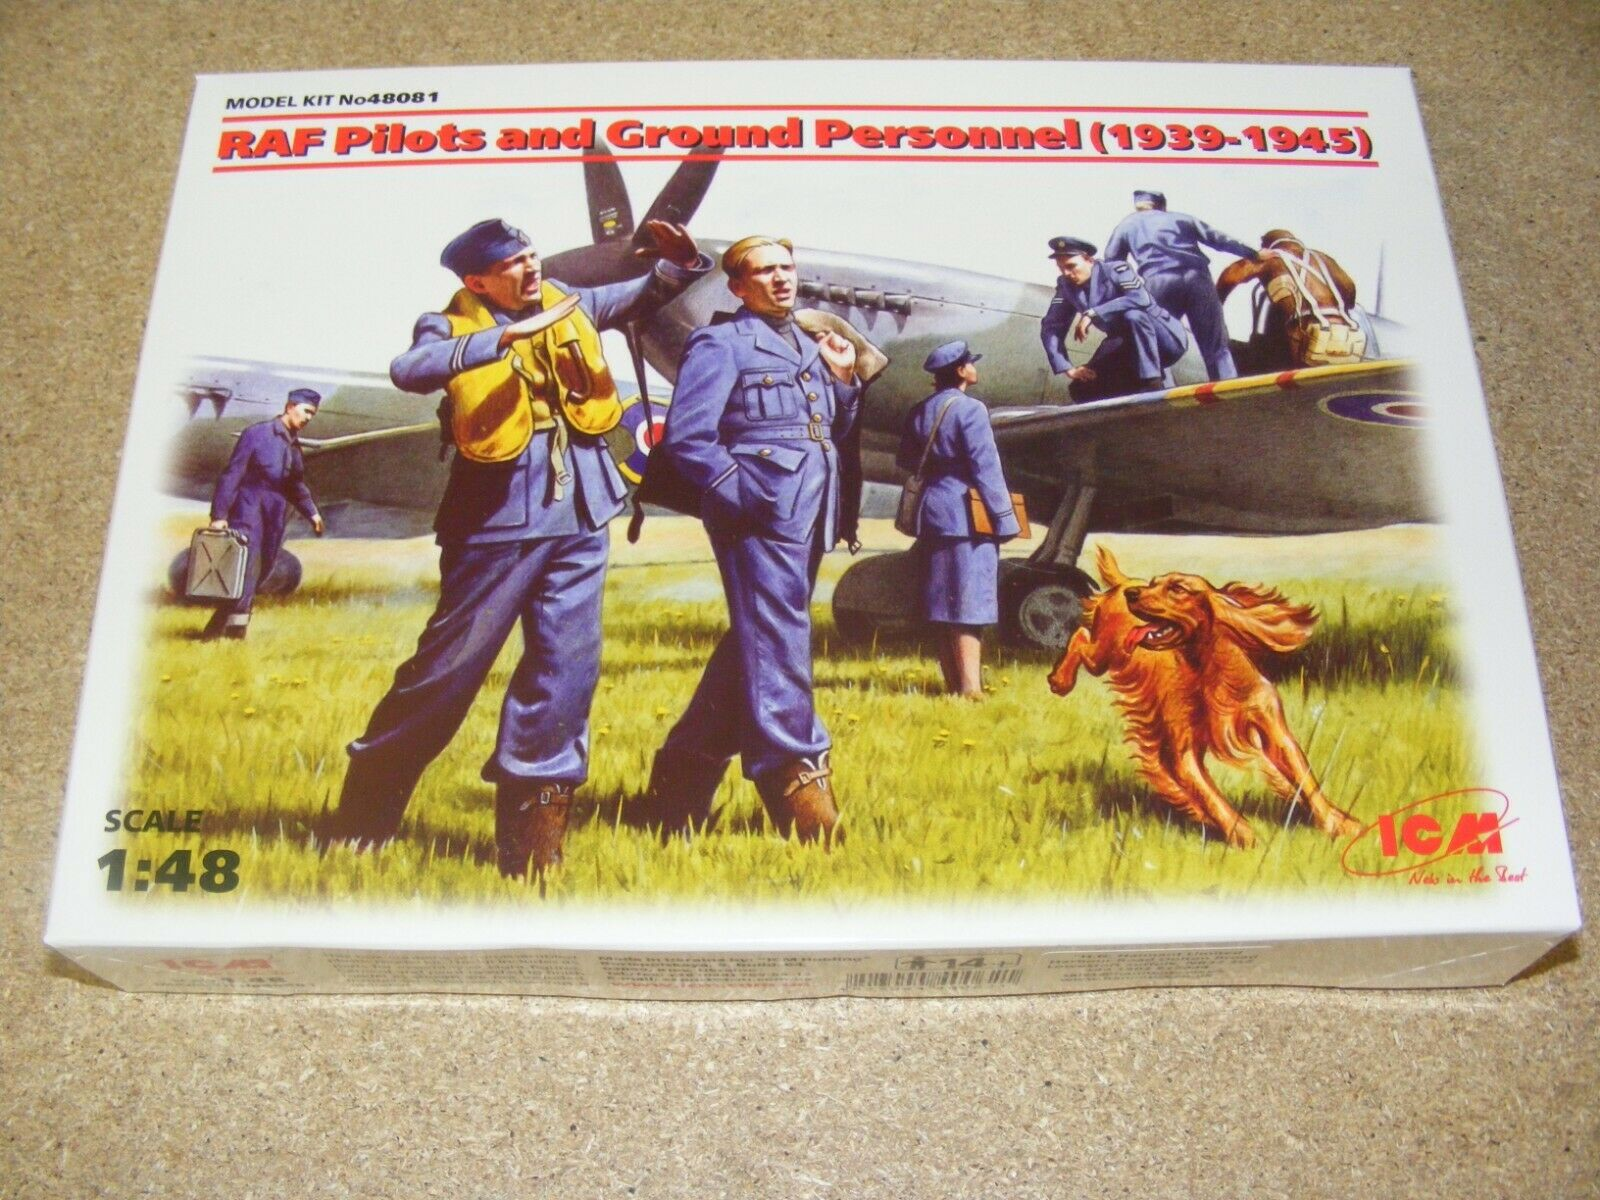 ICM 1:48 RAF Pilots and Ground Personnel 1939-1945